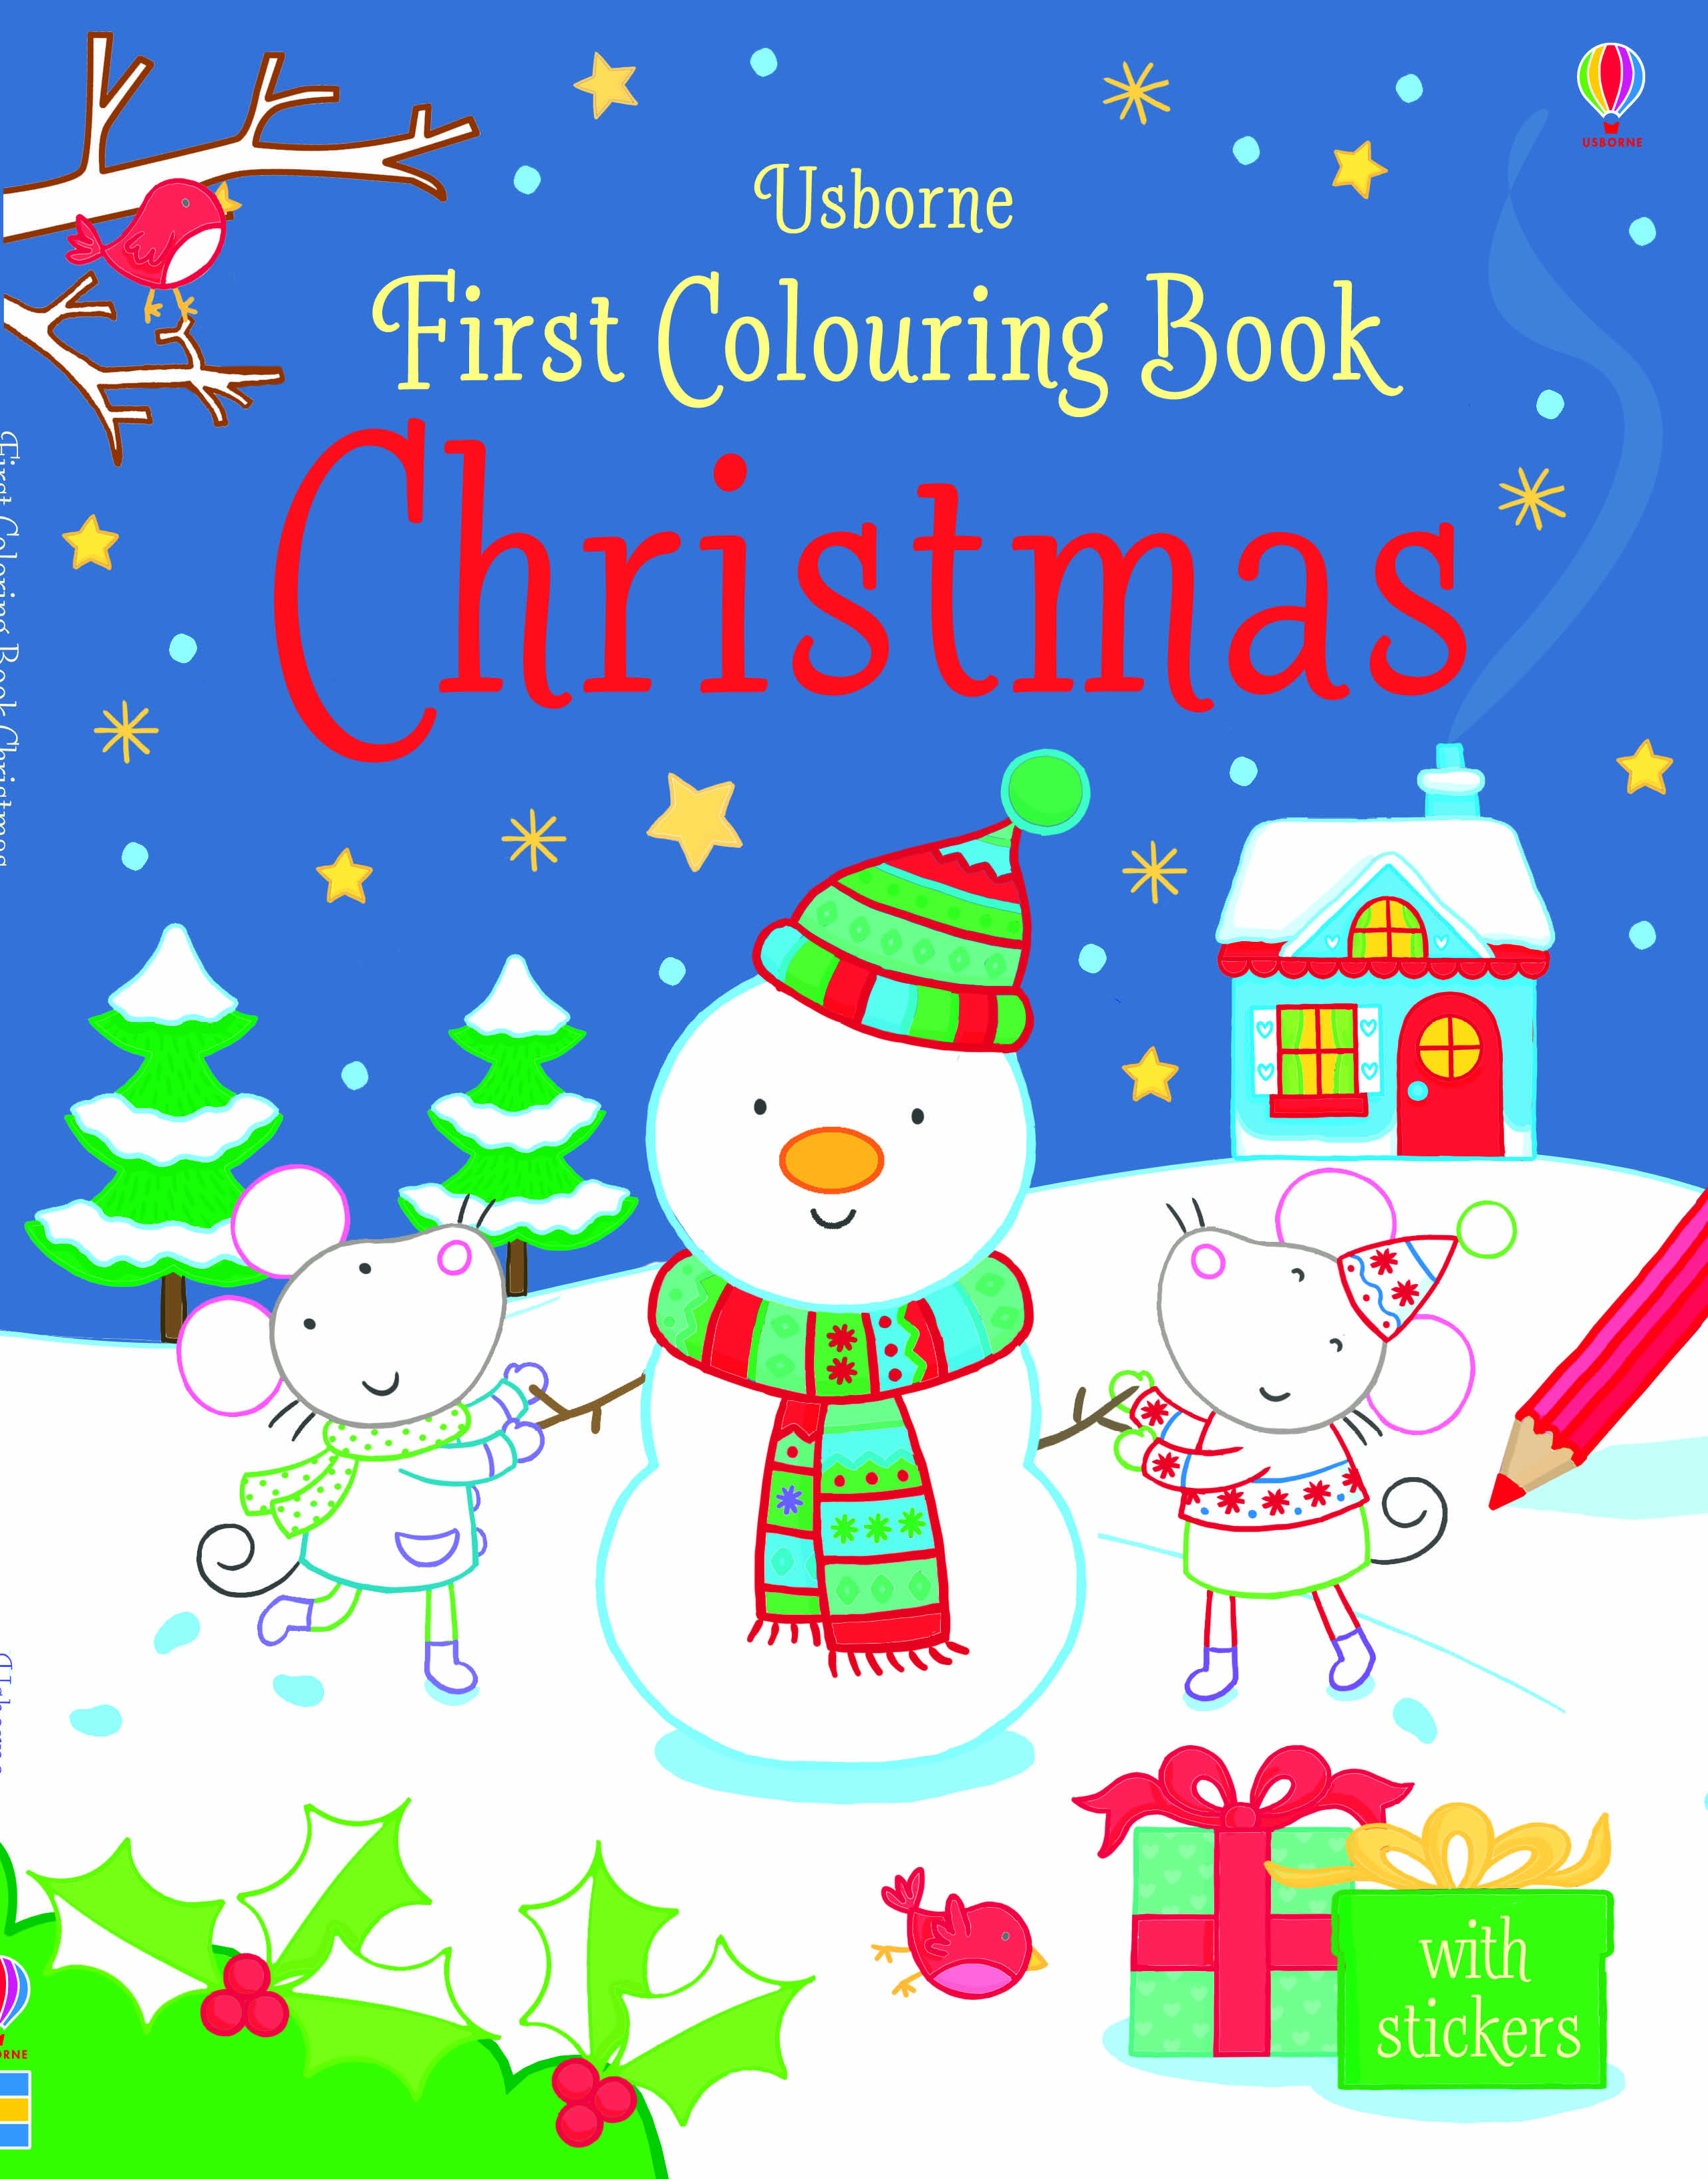 9781474906371?height\u003d218 together with the usborne book of drawing doodling and coloring for christmas on usborne christmas coloring book additionally usborne books more christmas pocket doodling and coloring book on usborne christmas coloring book furthermore christmas colouring books from usborne on usborne christmas coloring book along with 15 adult coloring book on usborne christmas coloring book